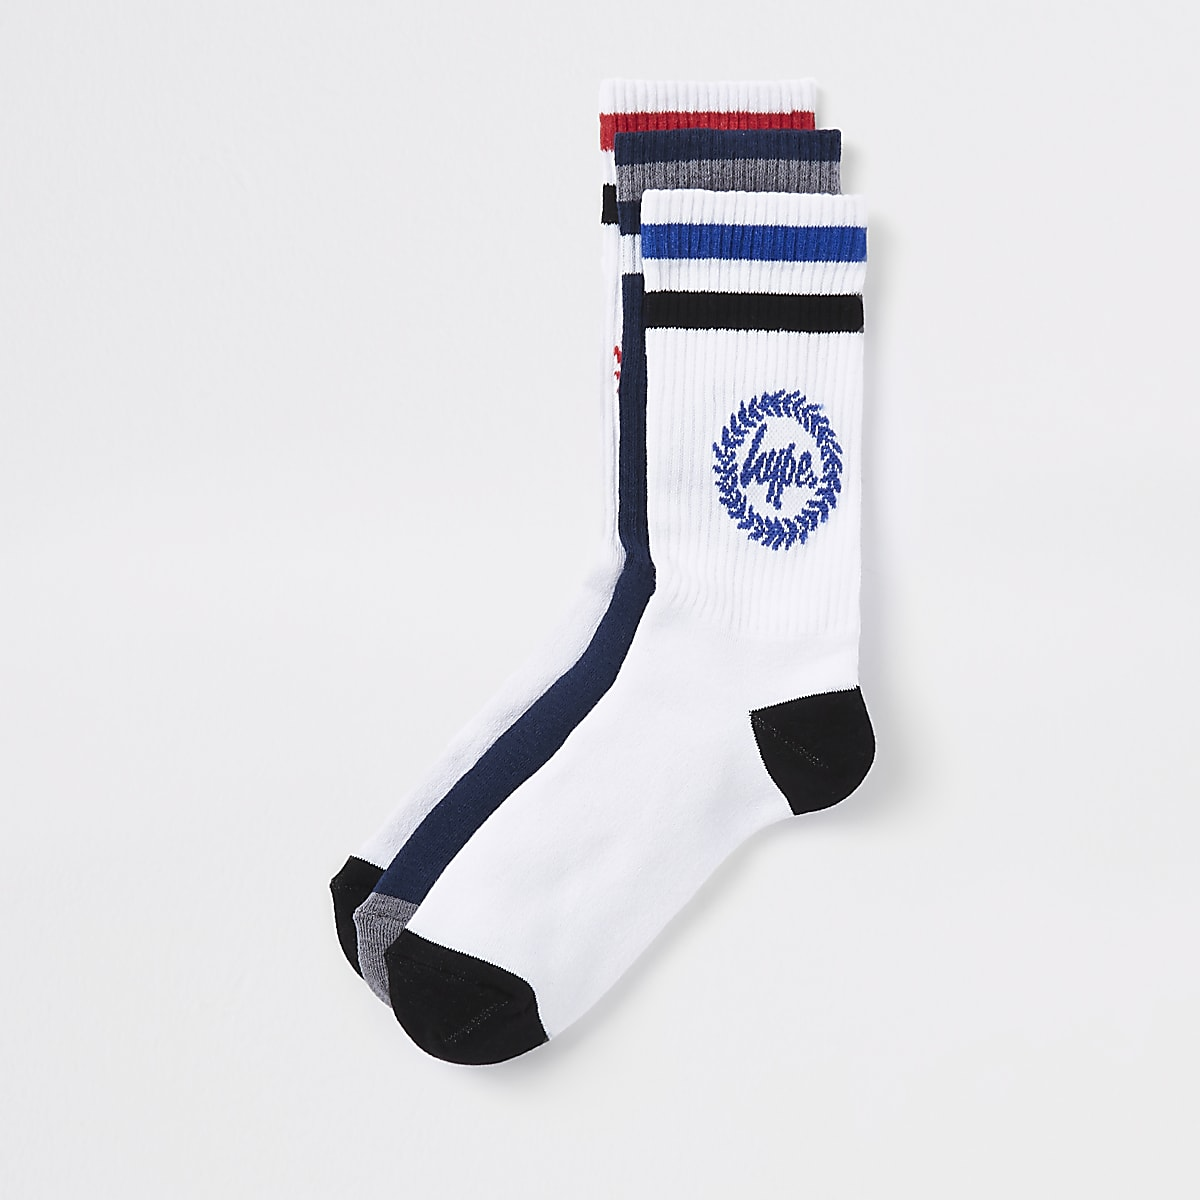 Hype navy crest print socks 3 pack